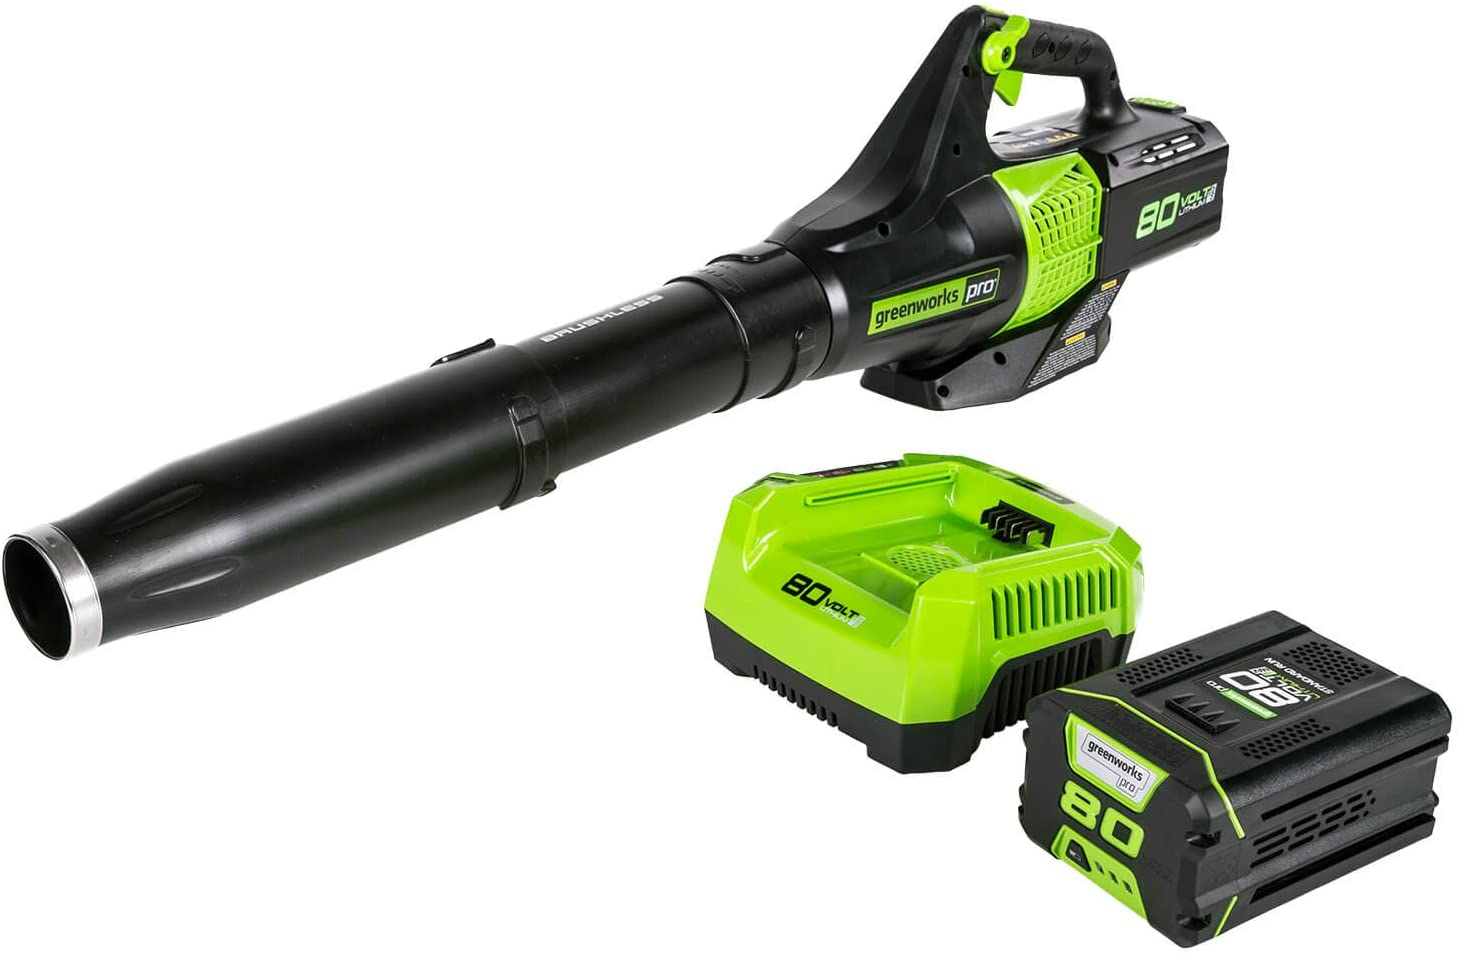 Greenworks BL80L2510 80V Jet Electric Leaf Blower